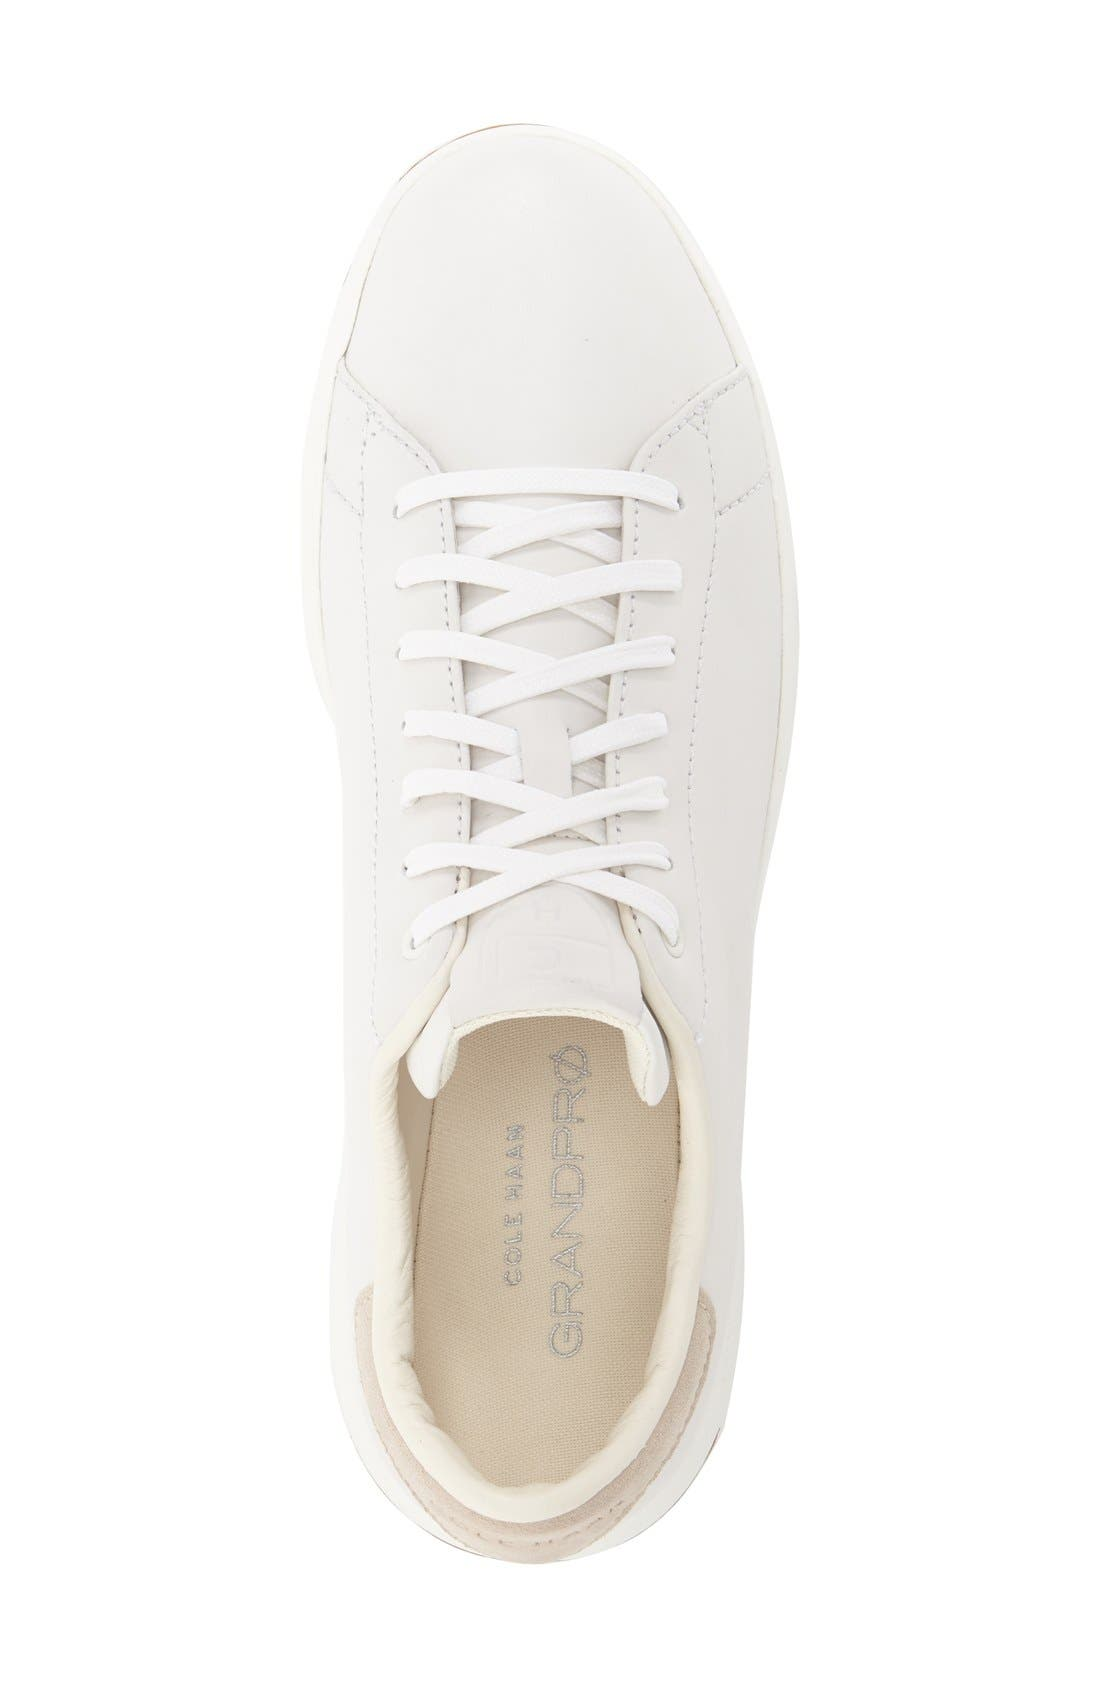 GrandPro Tennis Sneaker,                             Alternate thumbnail 7, color,                             WHITE